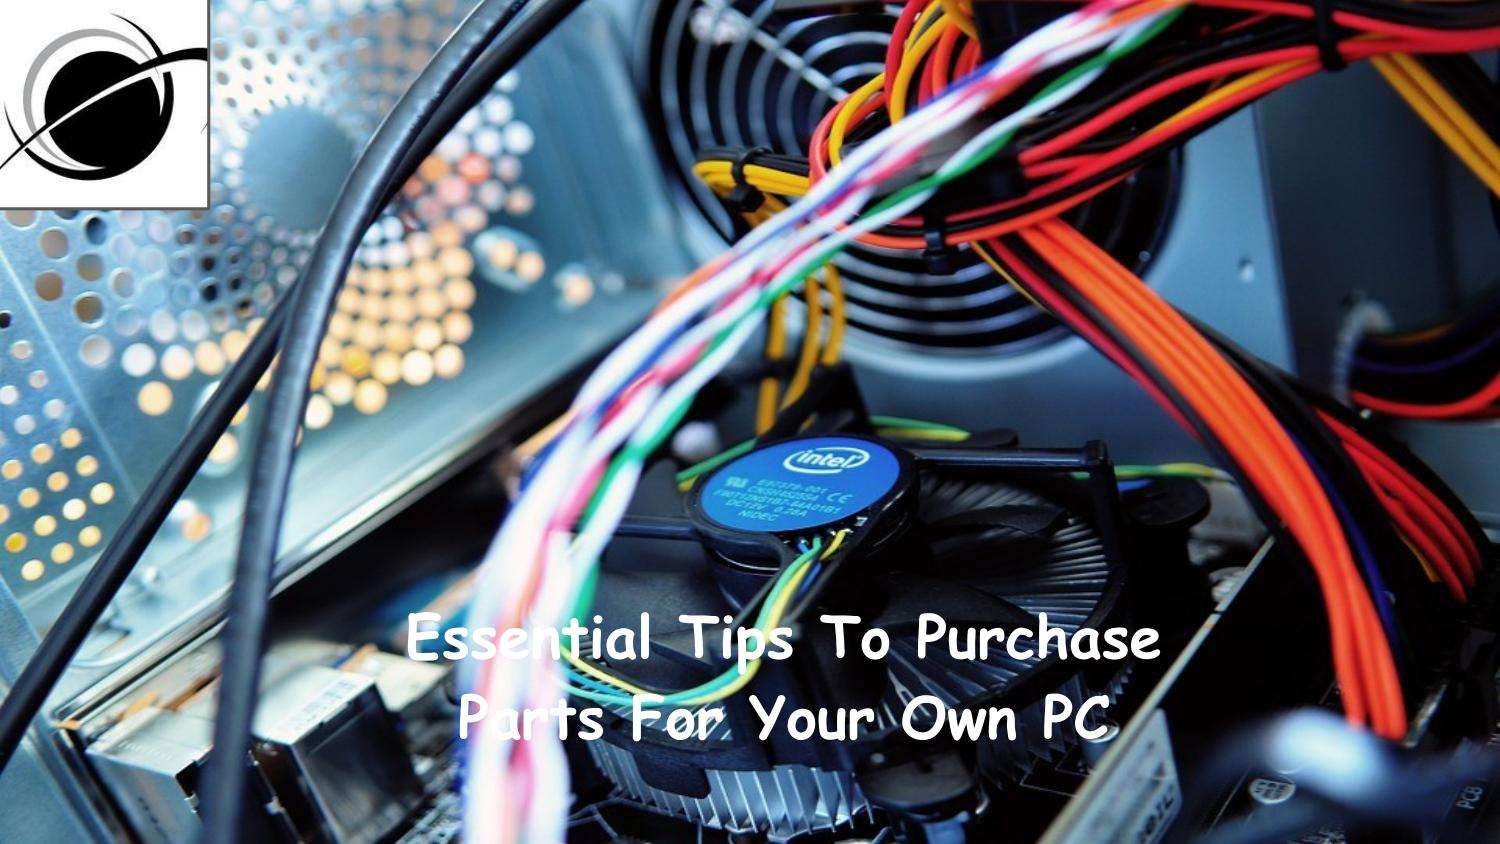 Essential Tips To Purchase Parts For Your Own Pc By Ambry Wiring International Ltd Issuu